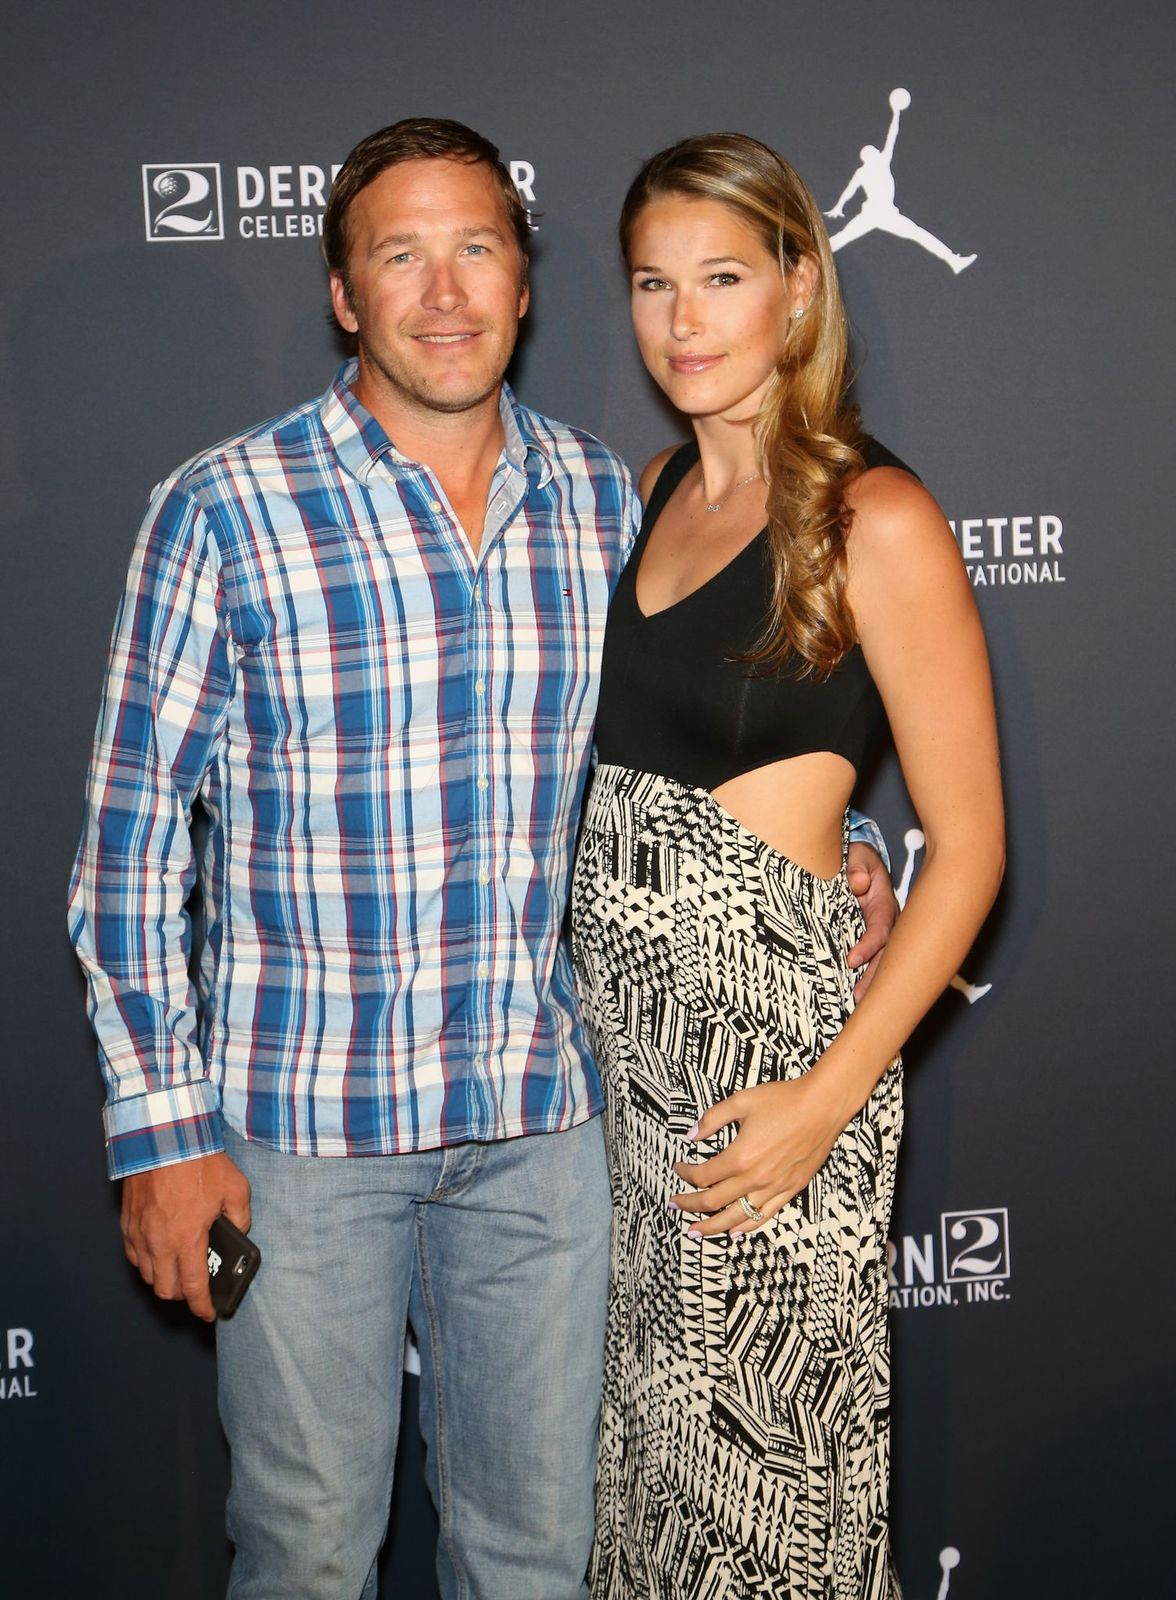 Bode and Morgan Miller at the kickoff of Derek Jeter's Celebrity Invitational on April 20, 2016, in Las Vegas, Nevada   Photo: Gabe Ginsberg/Getty Images